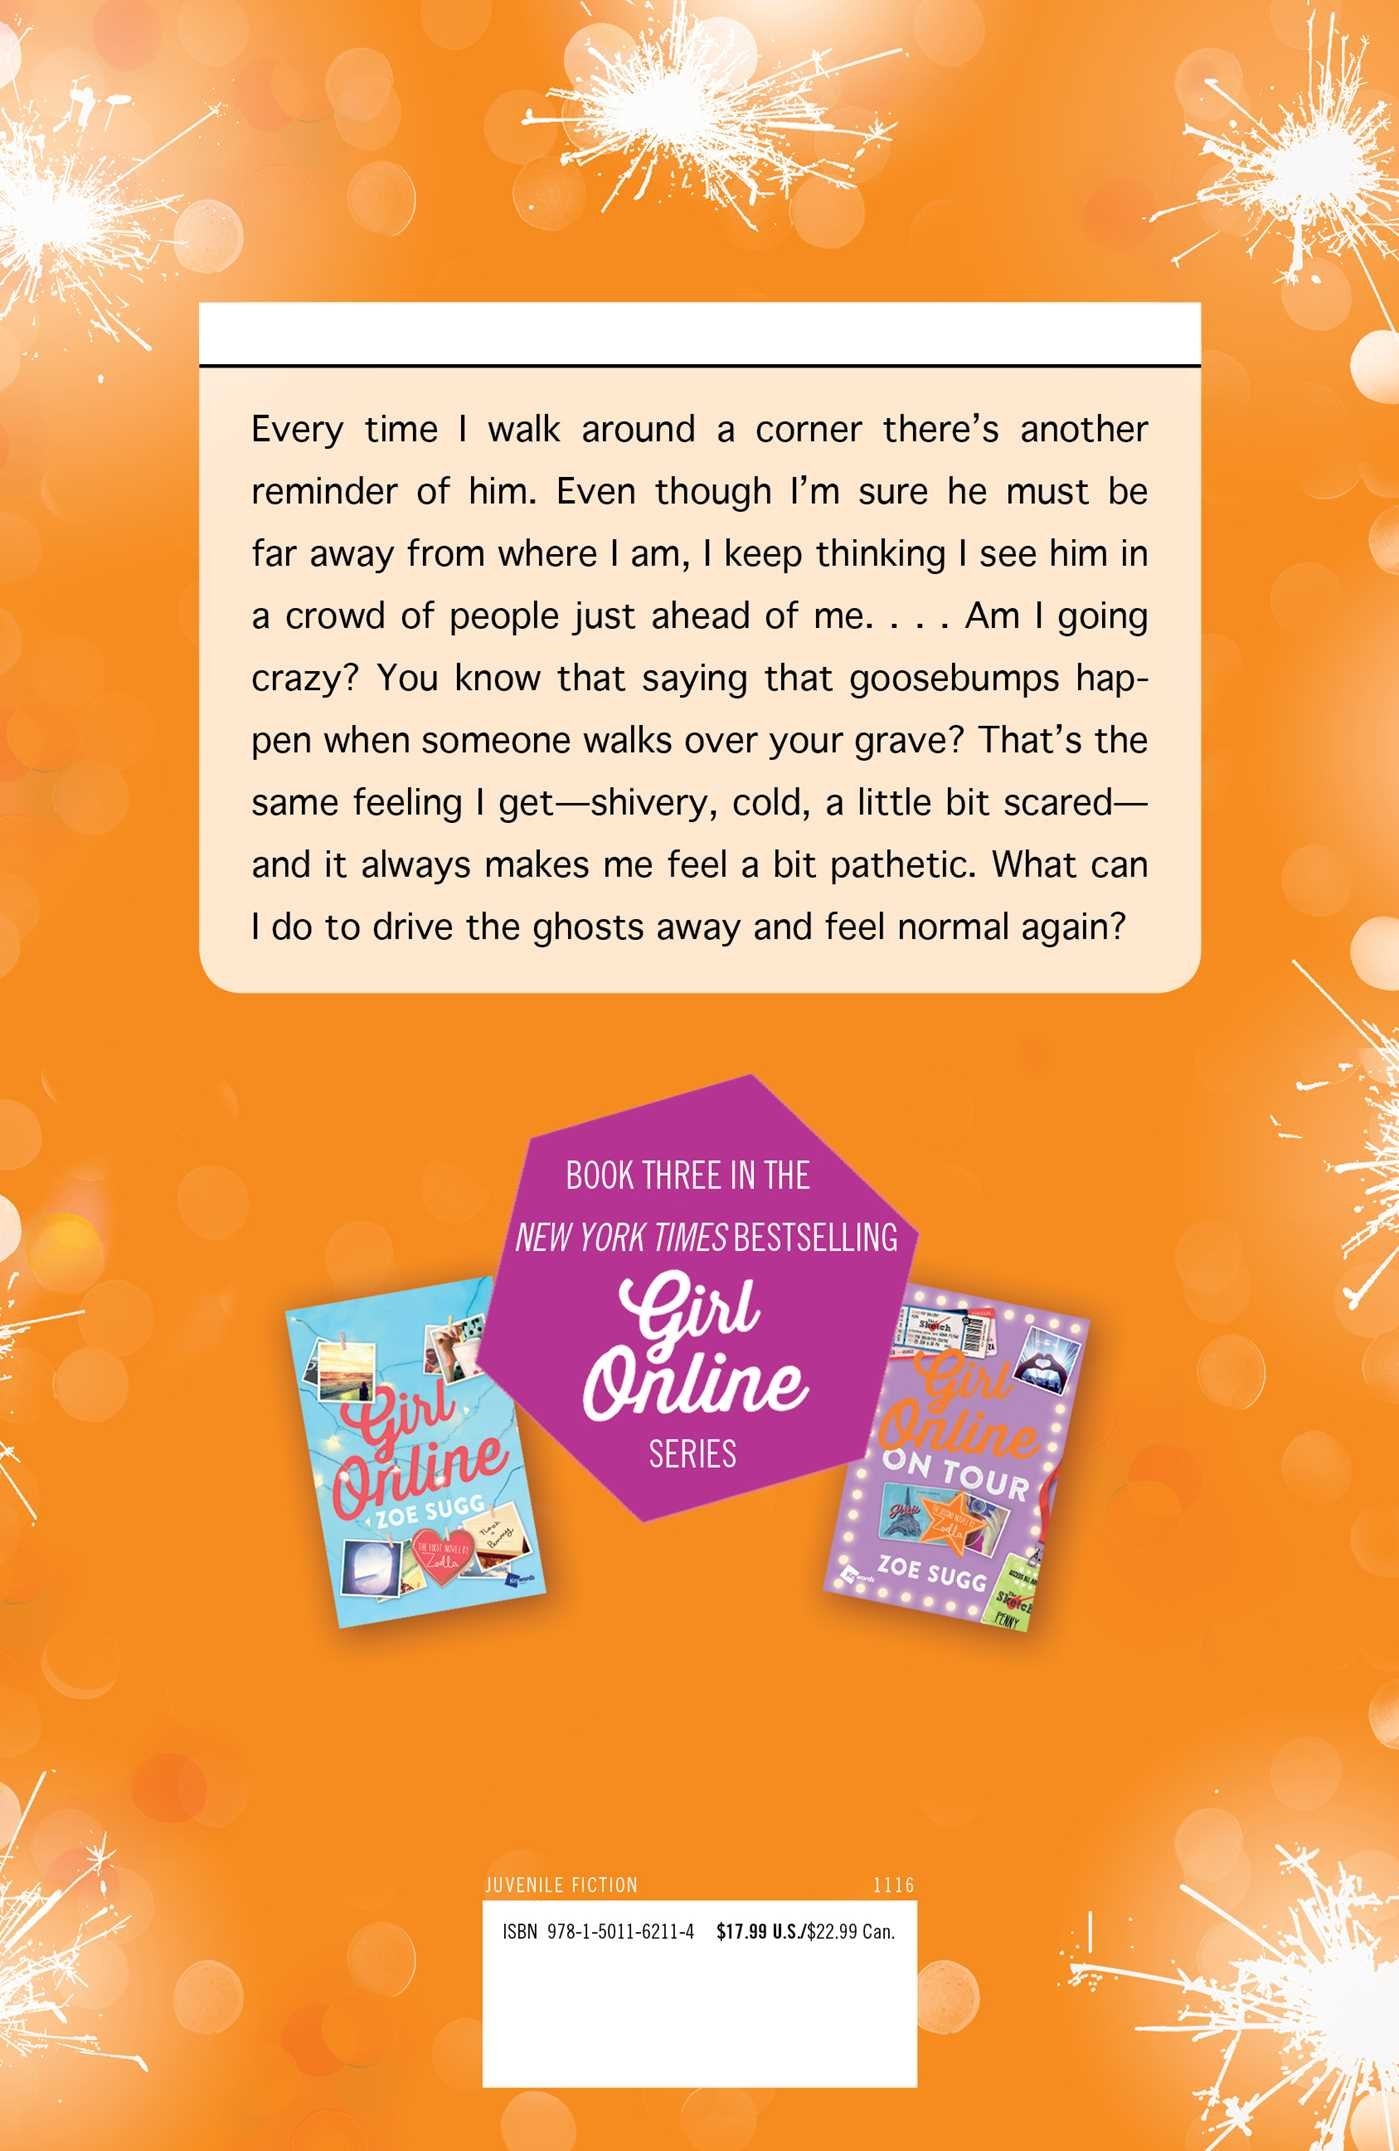 Amazon.com: Girl Online: Going Solo: The Third Novel by Zoella ...